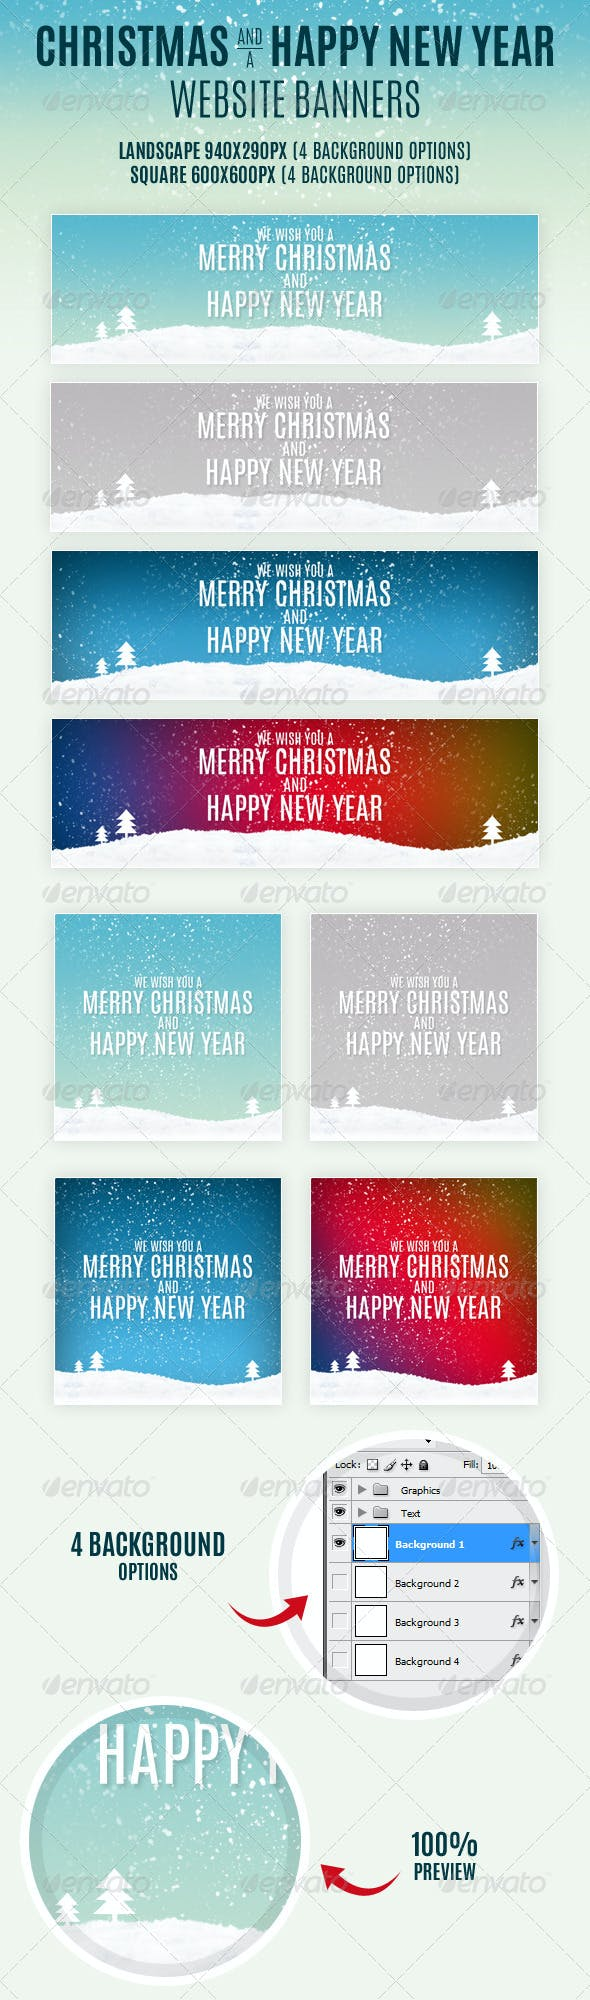 christmas and happy new year website banners banners ads web elements